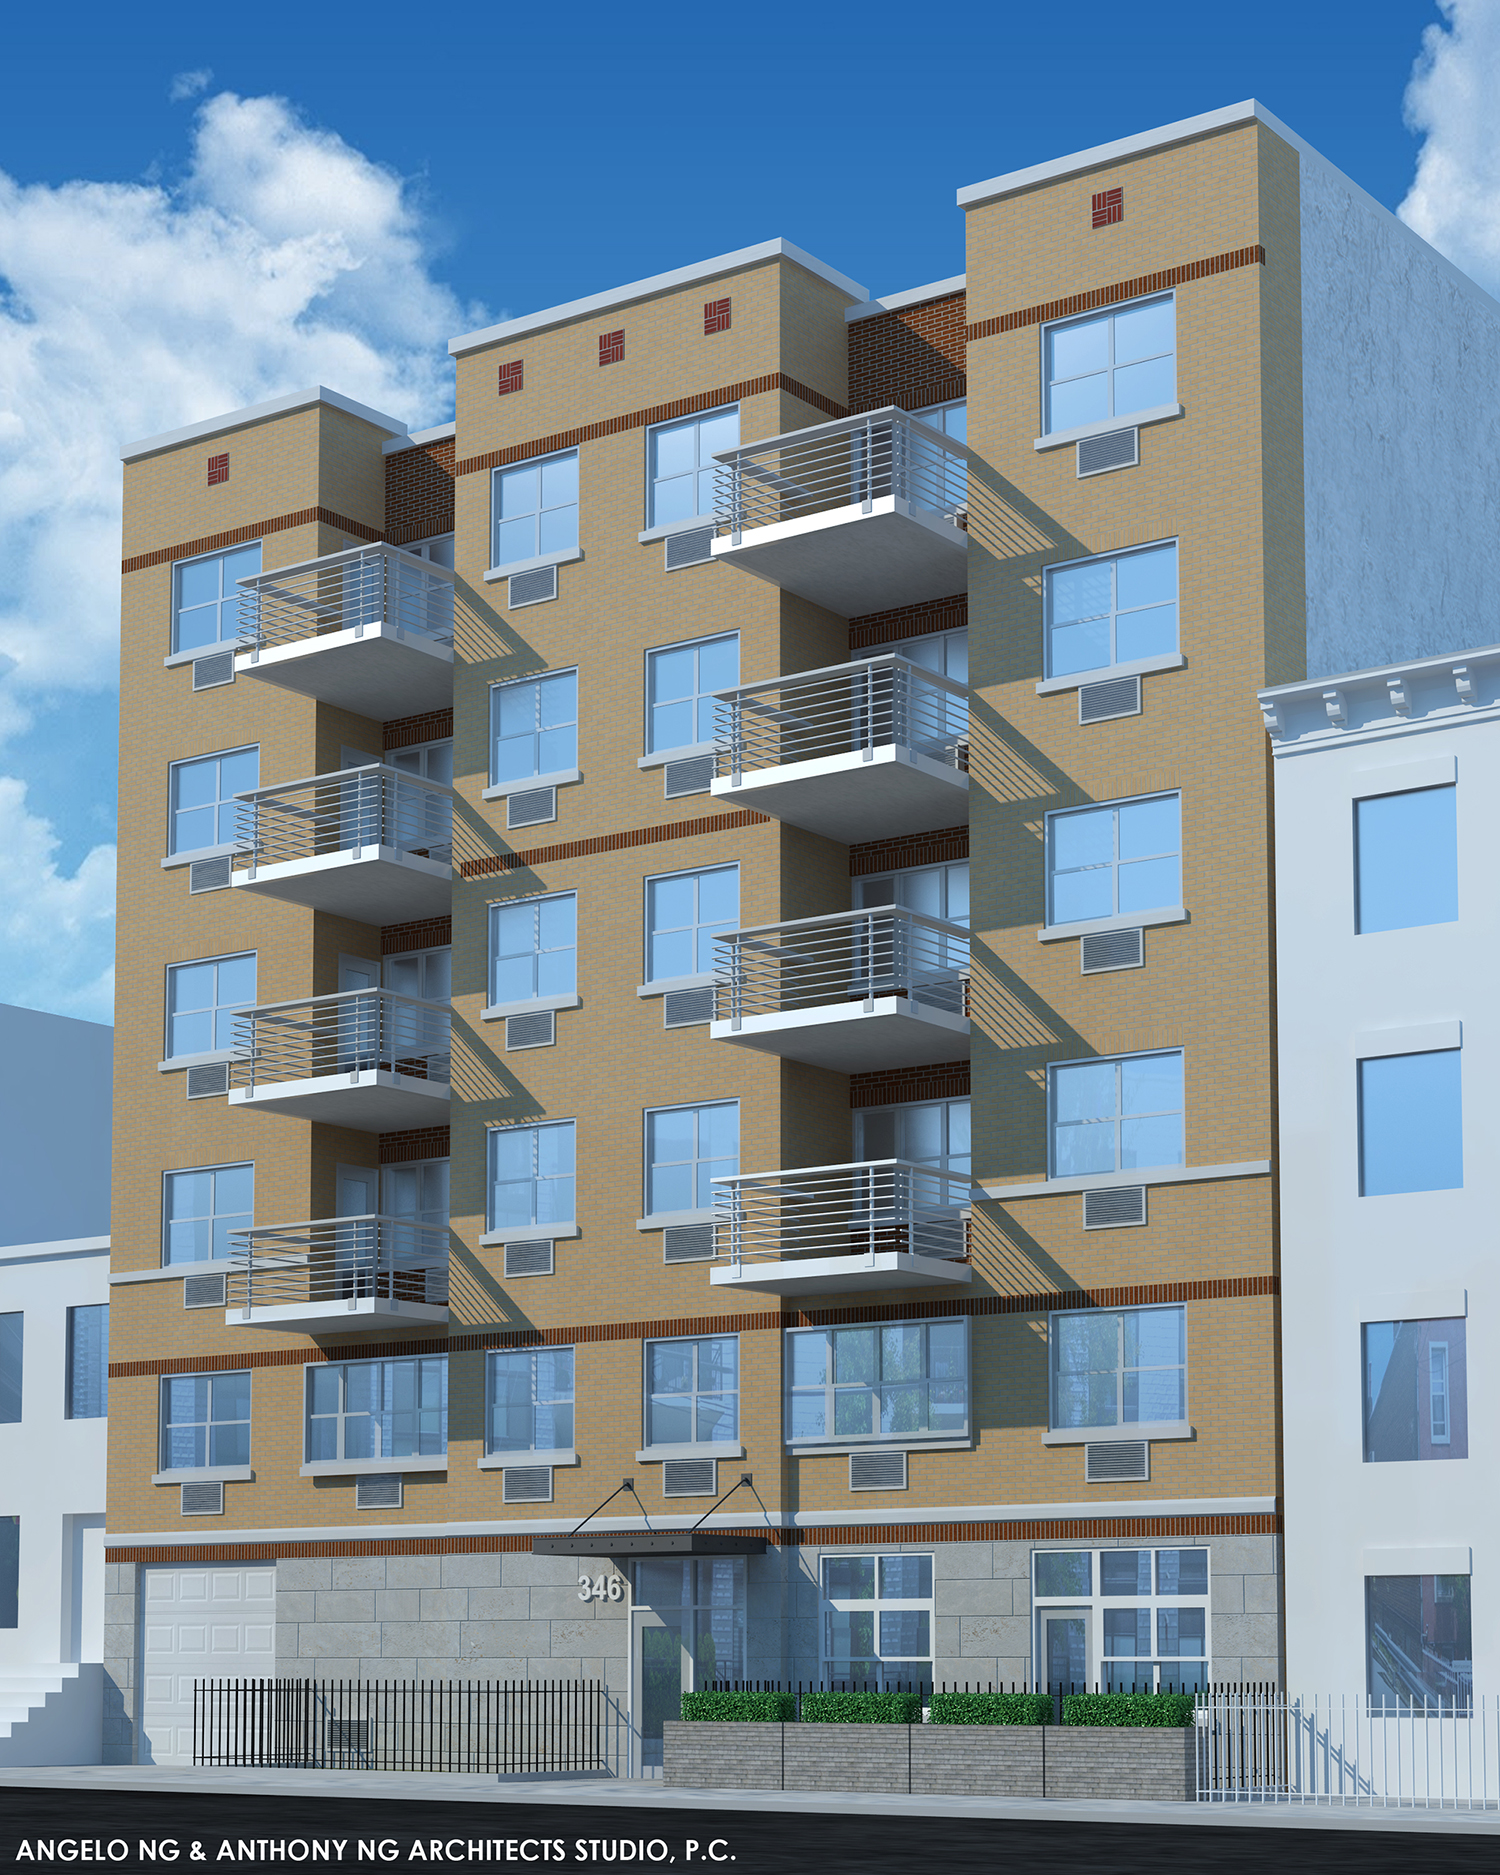 Revealed: Six-Story, 24-Unit Affordable Residential